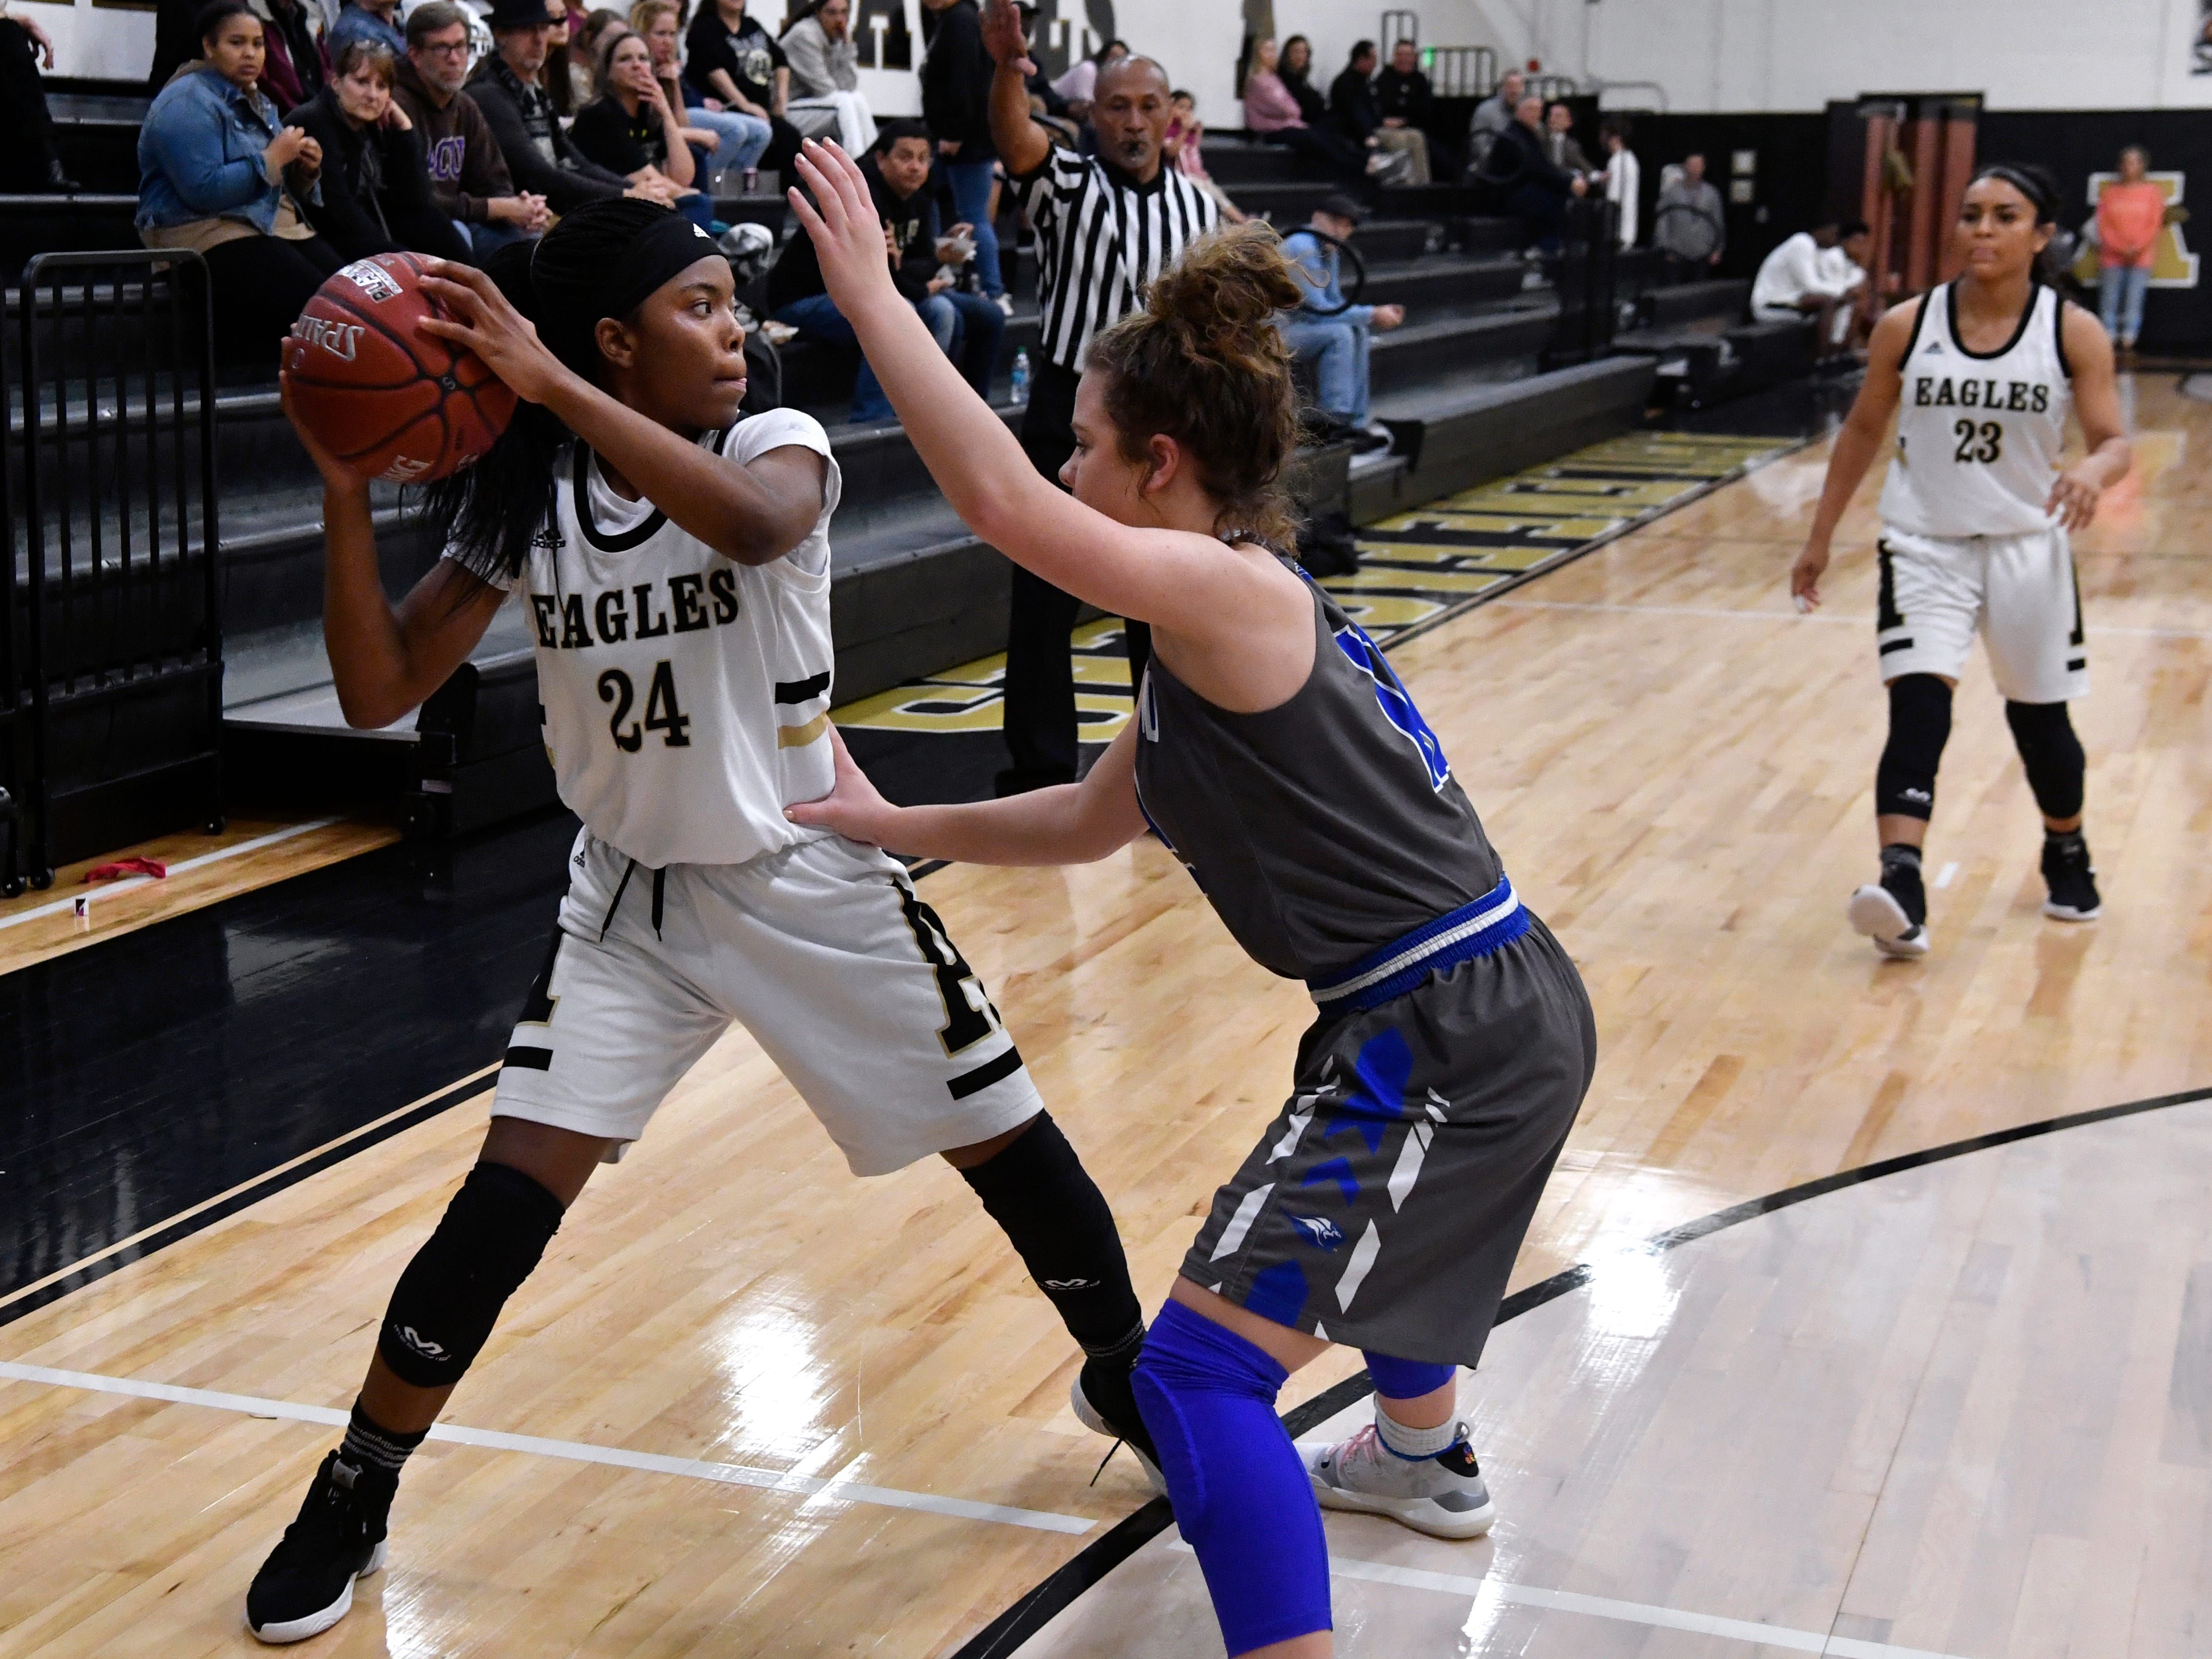 Lady Eagles' Trakenya Roberson is guarded by Weatherford's Hannah Kness during Friday's game at Abilene High Jan. 11, 2019. Final score was 51-38, Abilene.